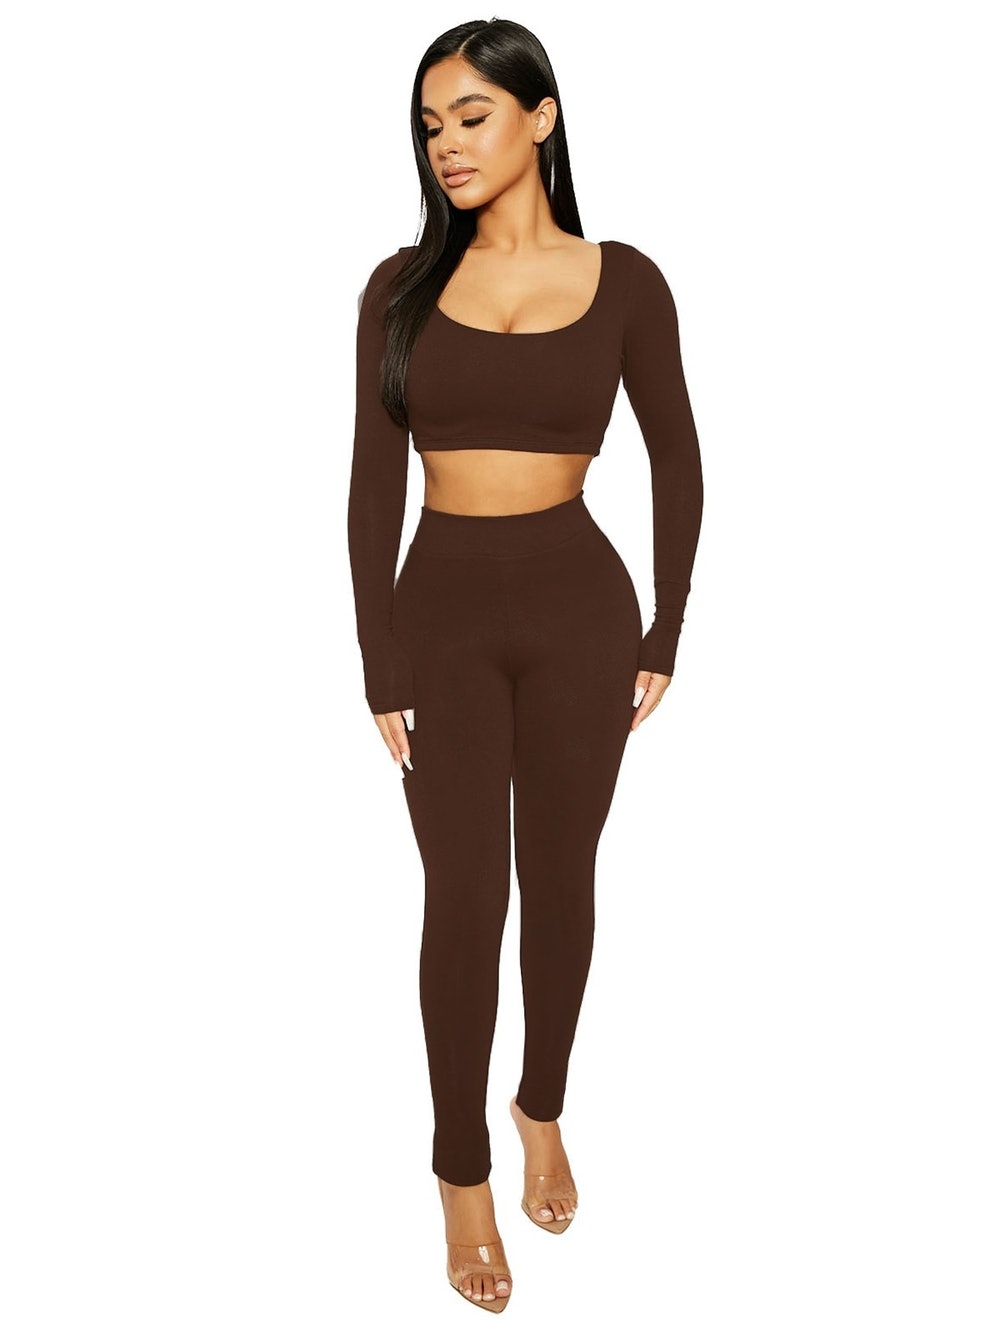 Scooped Up Tight Legging Set